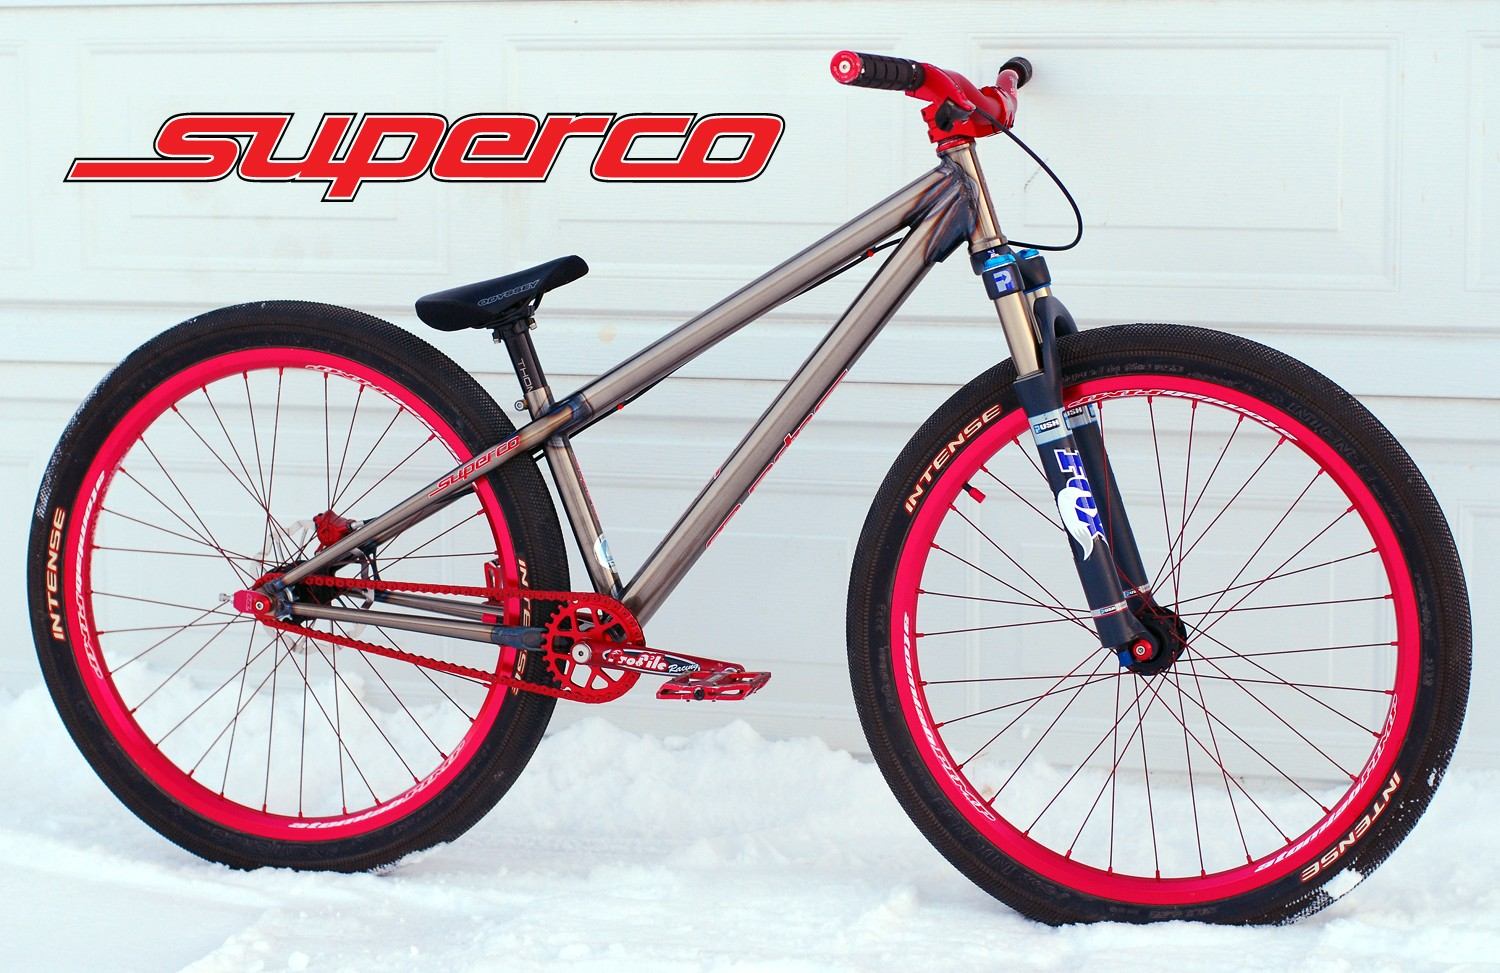 Superco Handbuilt Dirt Jump Hardtail Mountain Bikes Blog